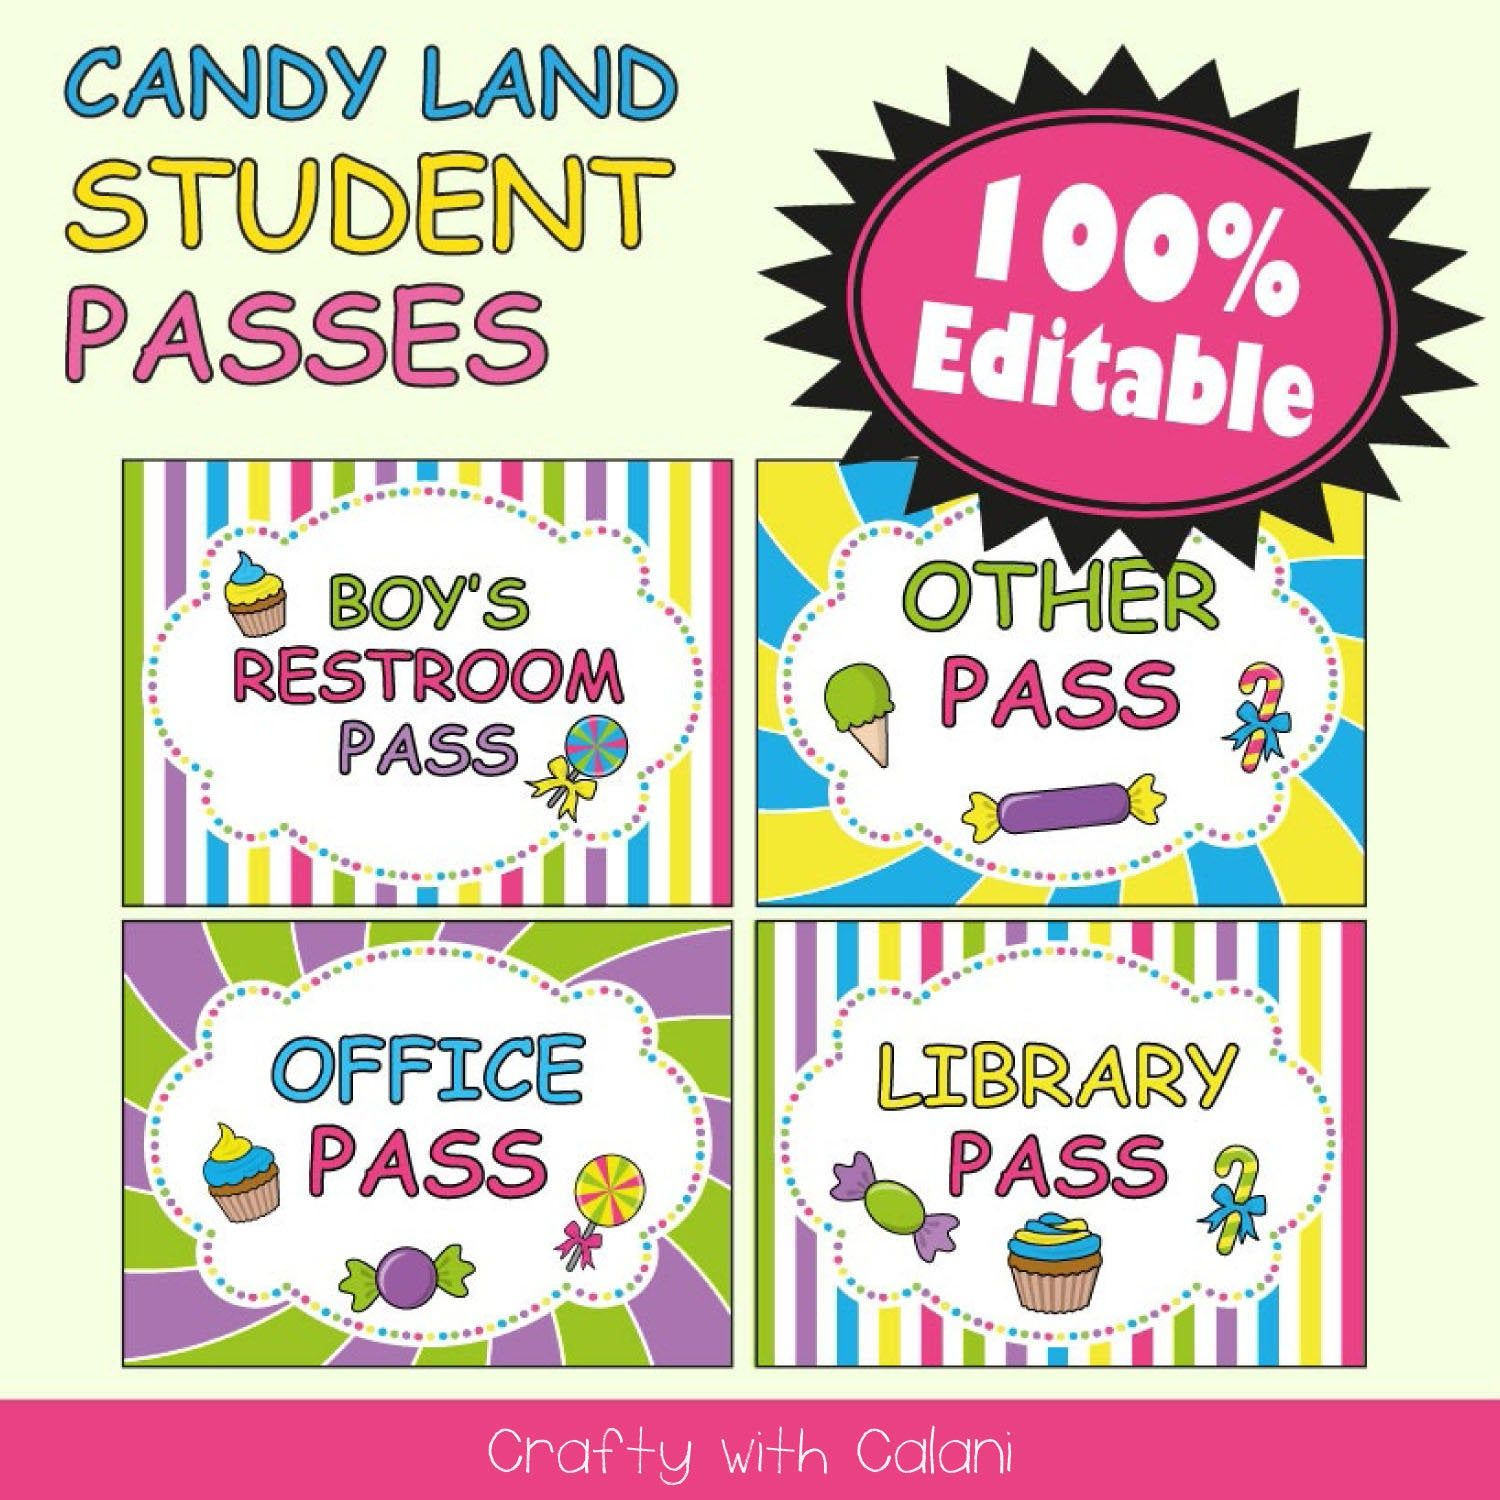 This is a graphic of Hall Pass Printable with regard to customizable